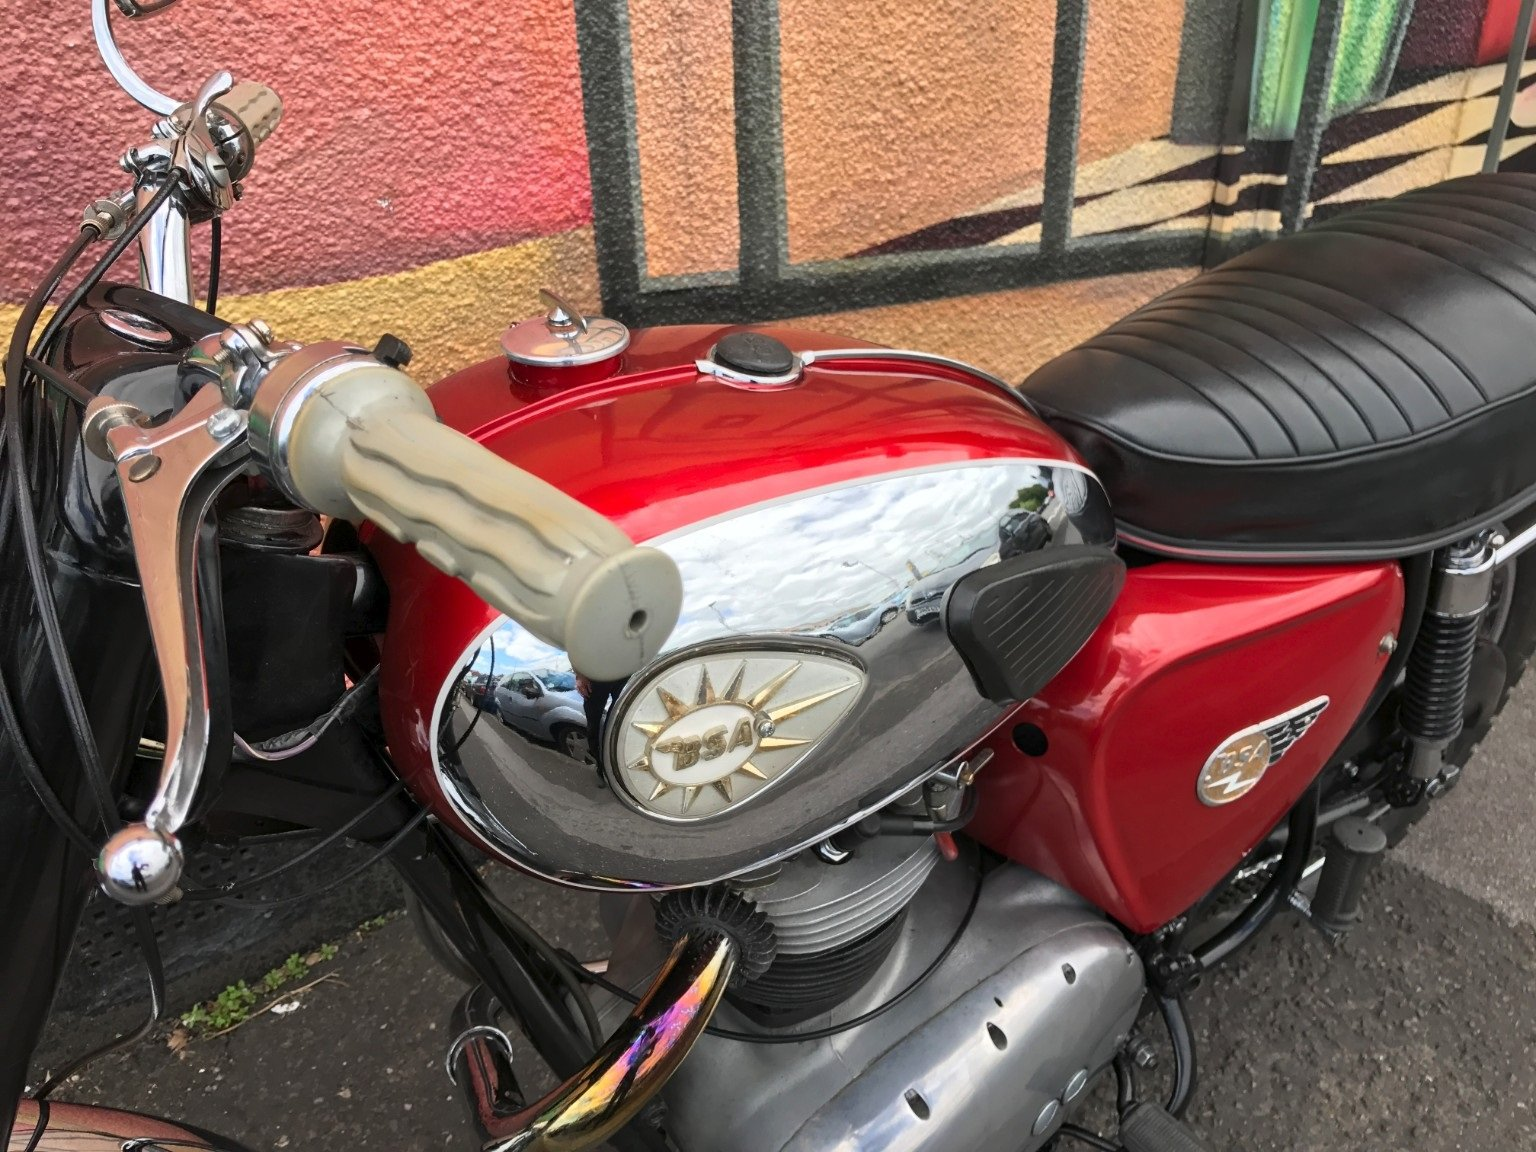 BSA A65 650cc 1964 STOCK CLEARANCE For Sale (picture 4 of 5)